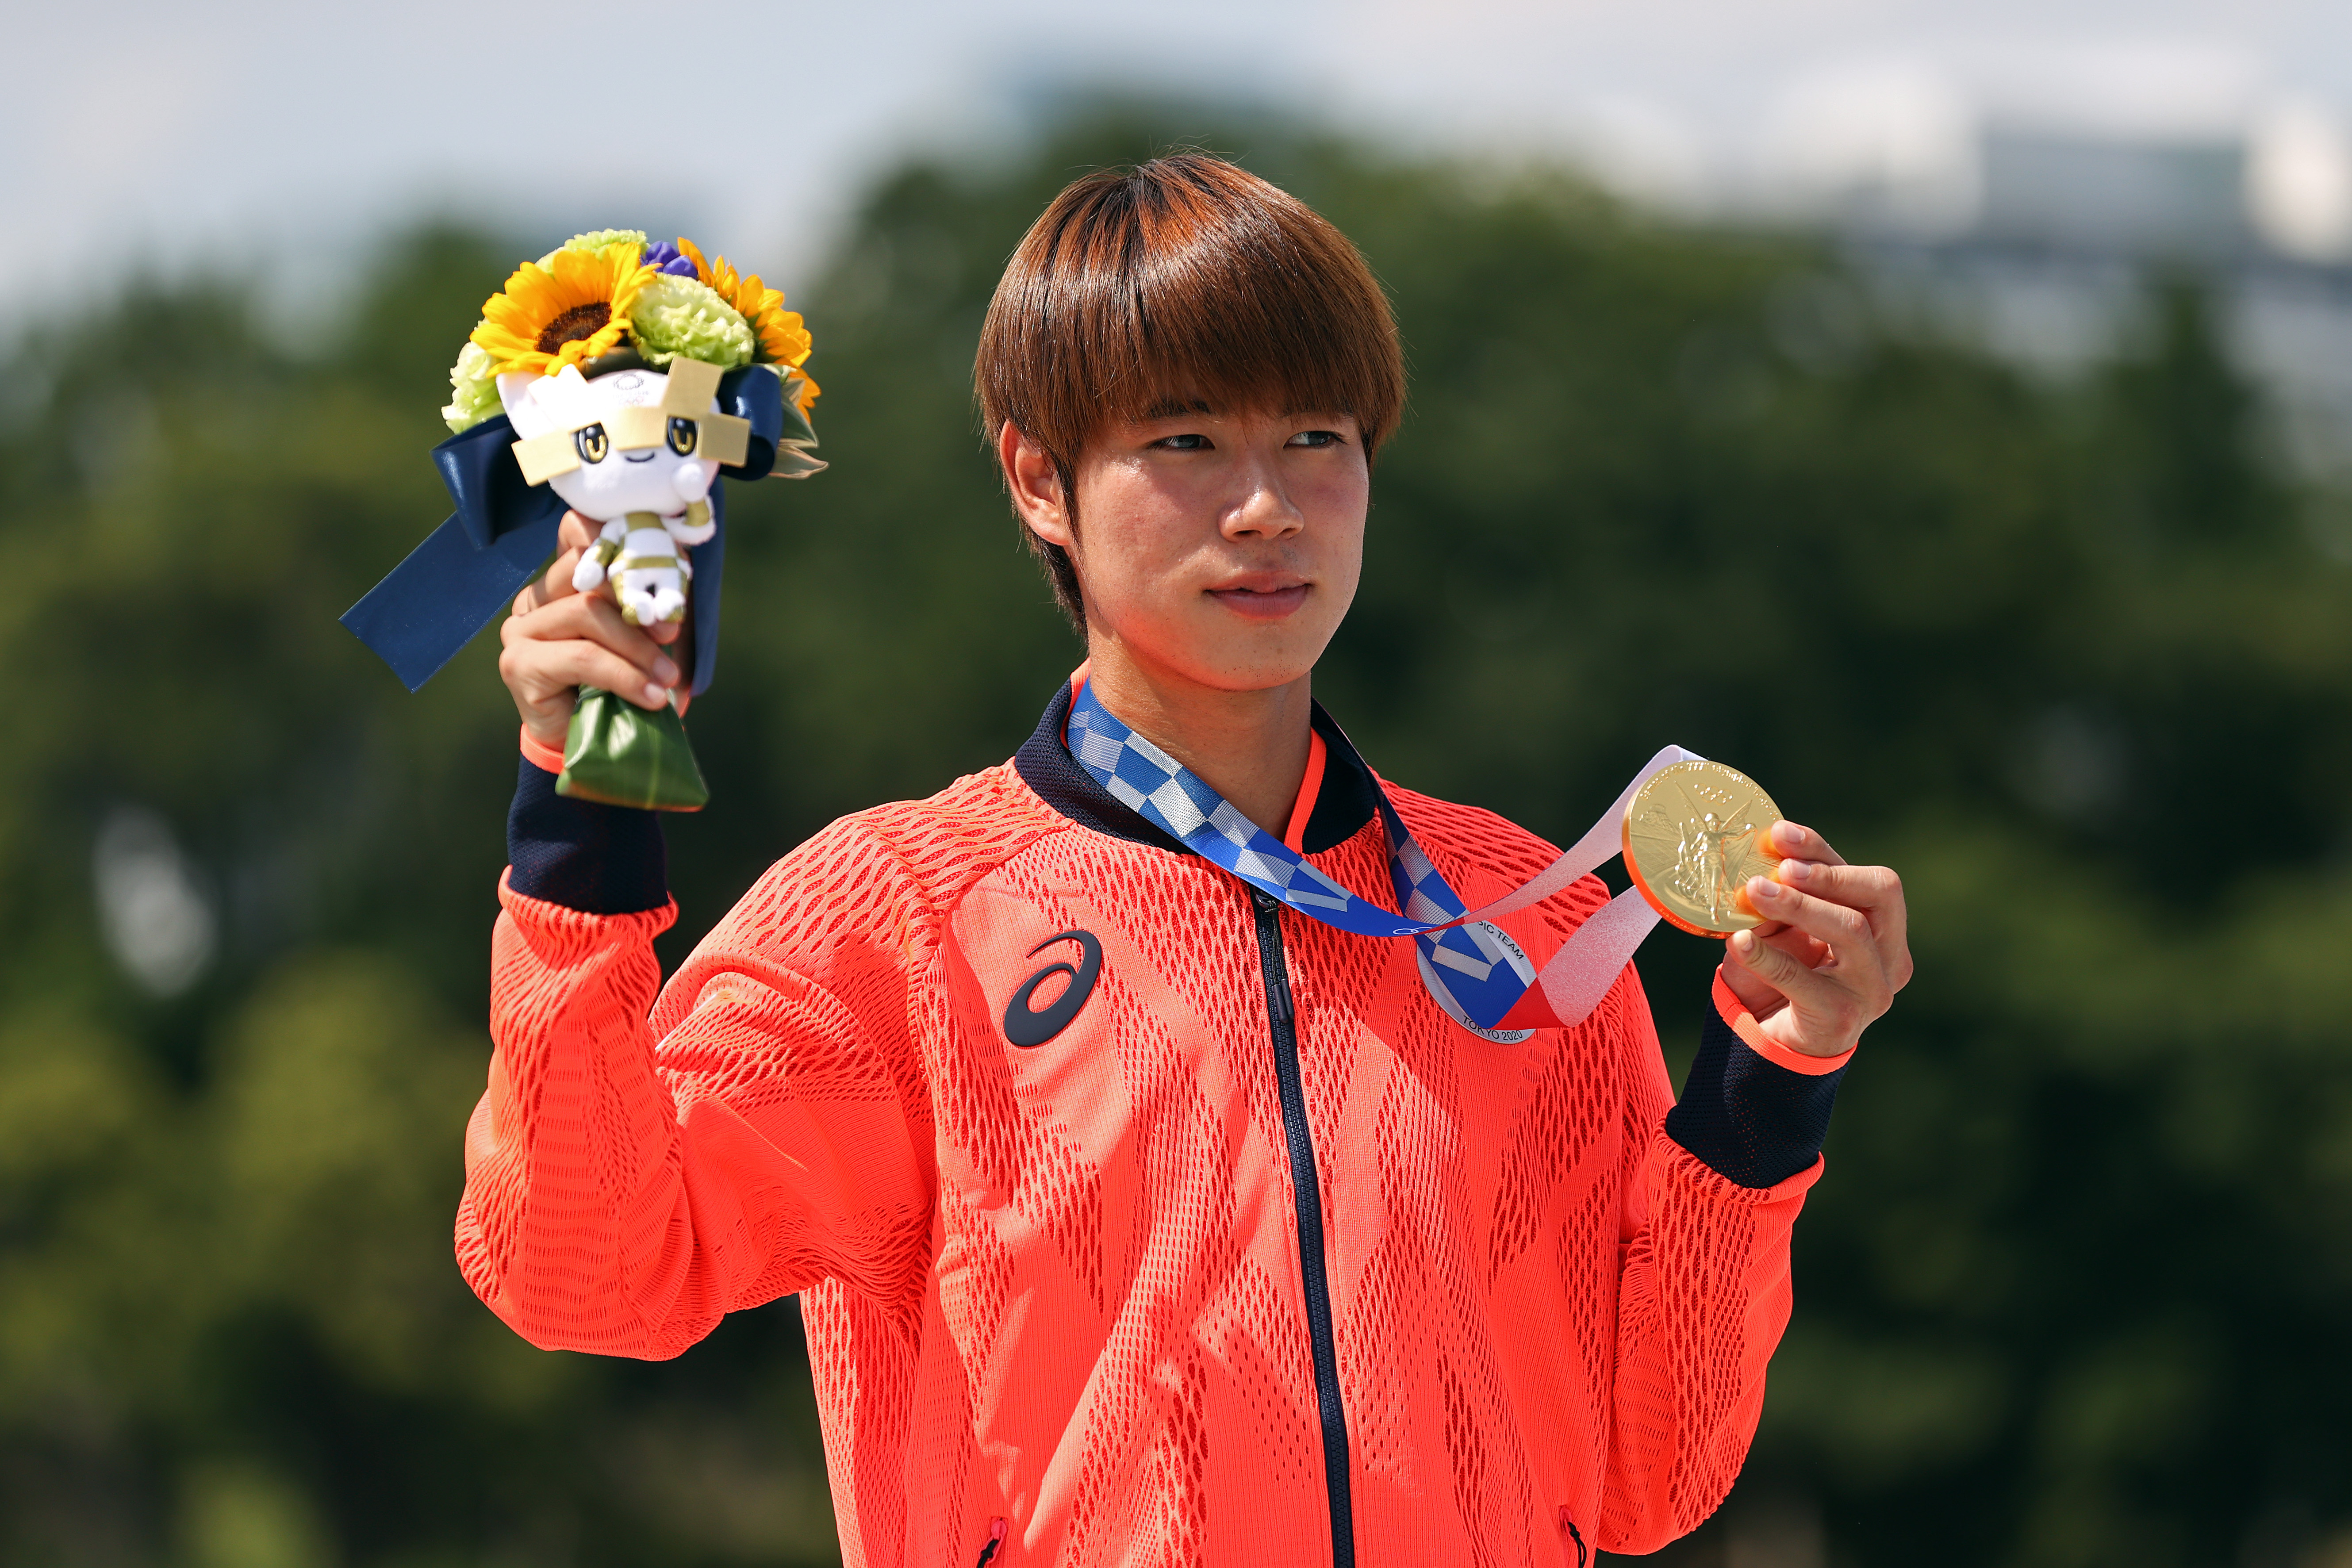 Yuto Horigome of Team Japan poses with his gold medal at the Skateboarding Men's Street Finals medal ceremony on July 25, in Tokyo, Japan.